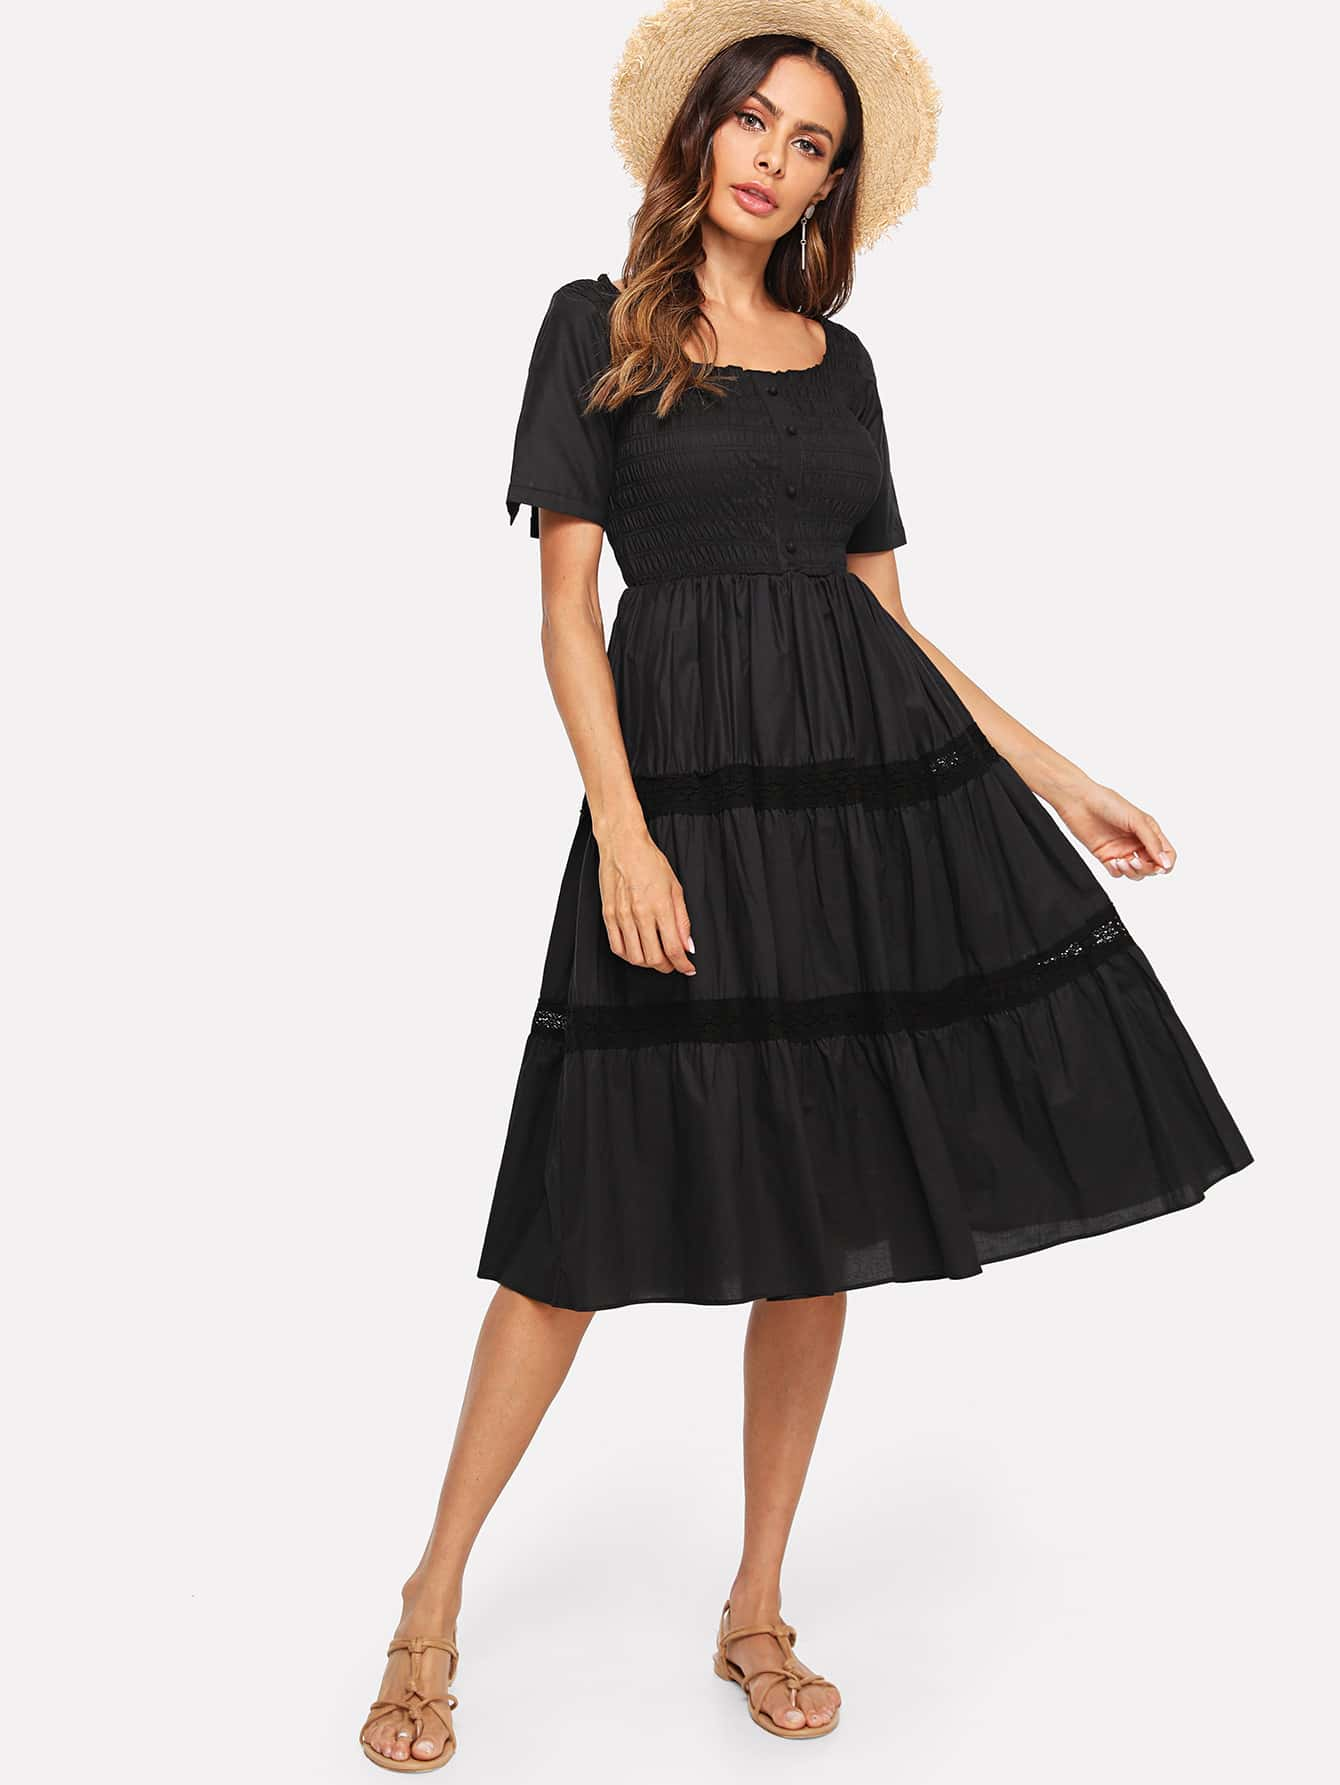 Button Up Front Tiered Ruffle Hem Dress surplice neck ruffle embellished button up dress